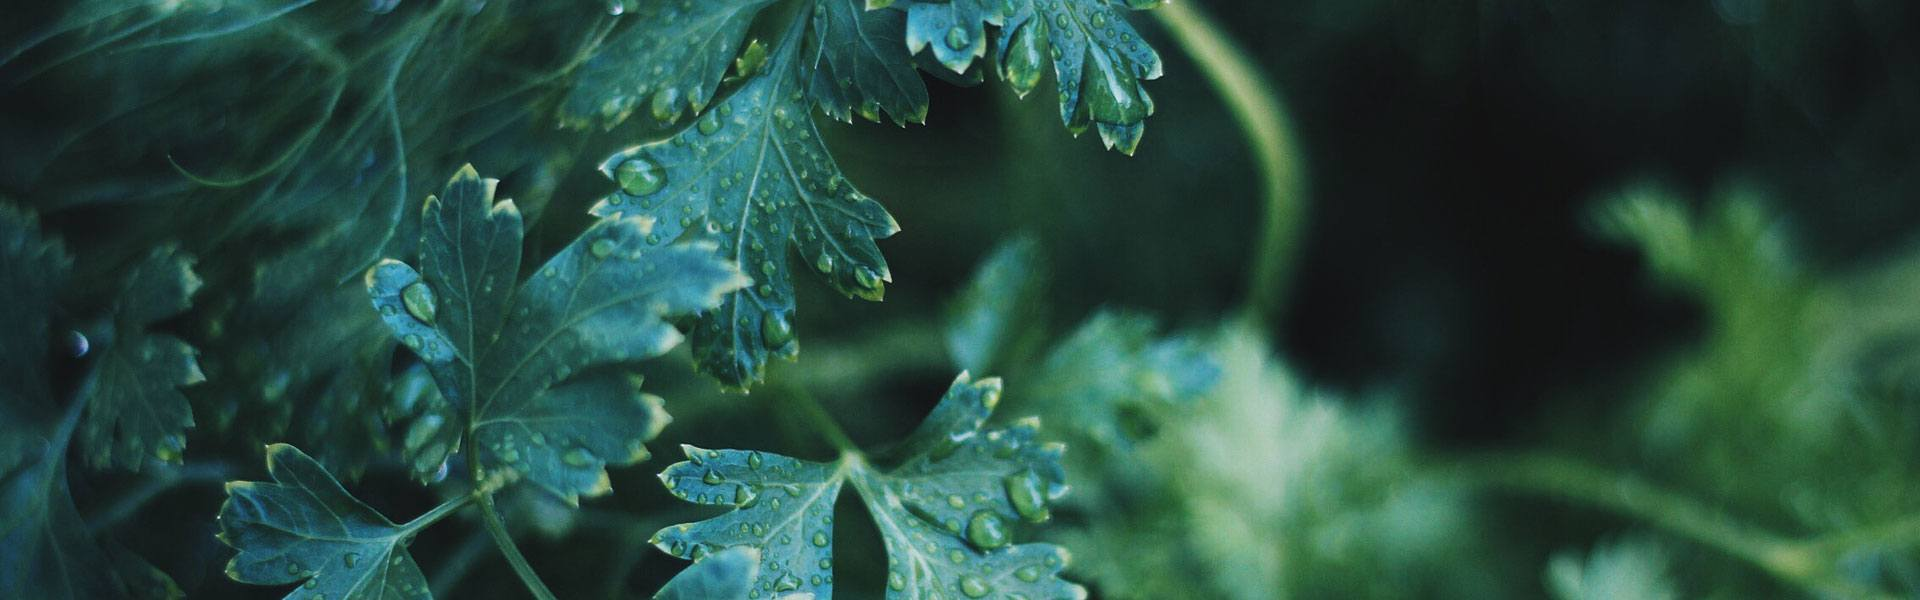 Droplets of water sit on a several green leaves